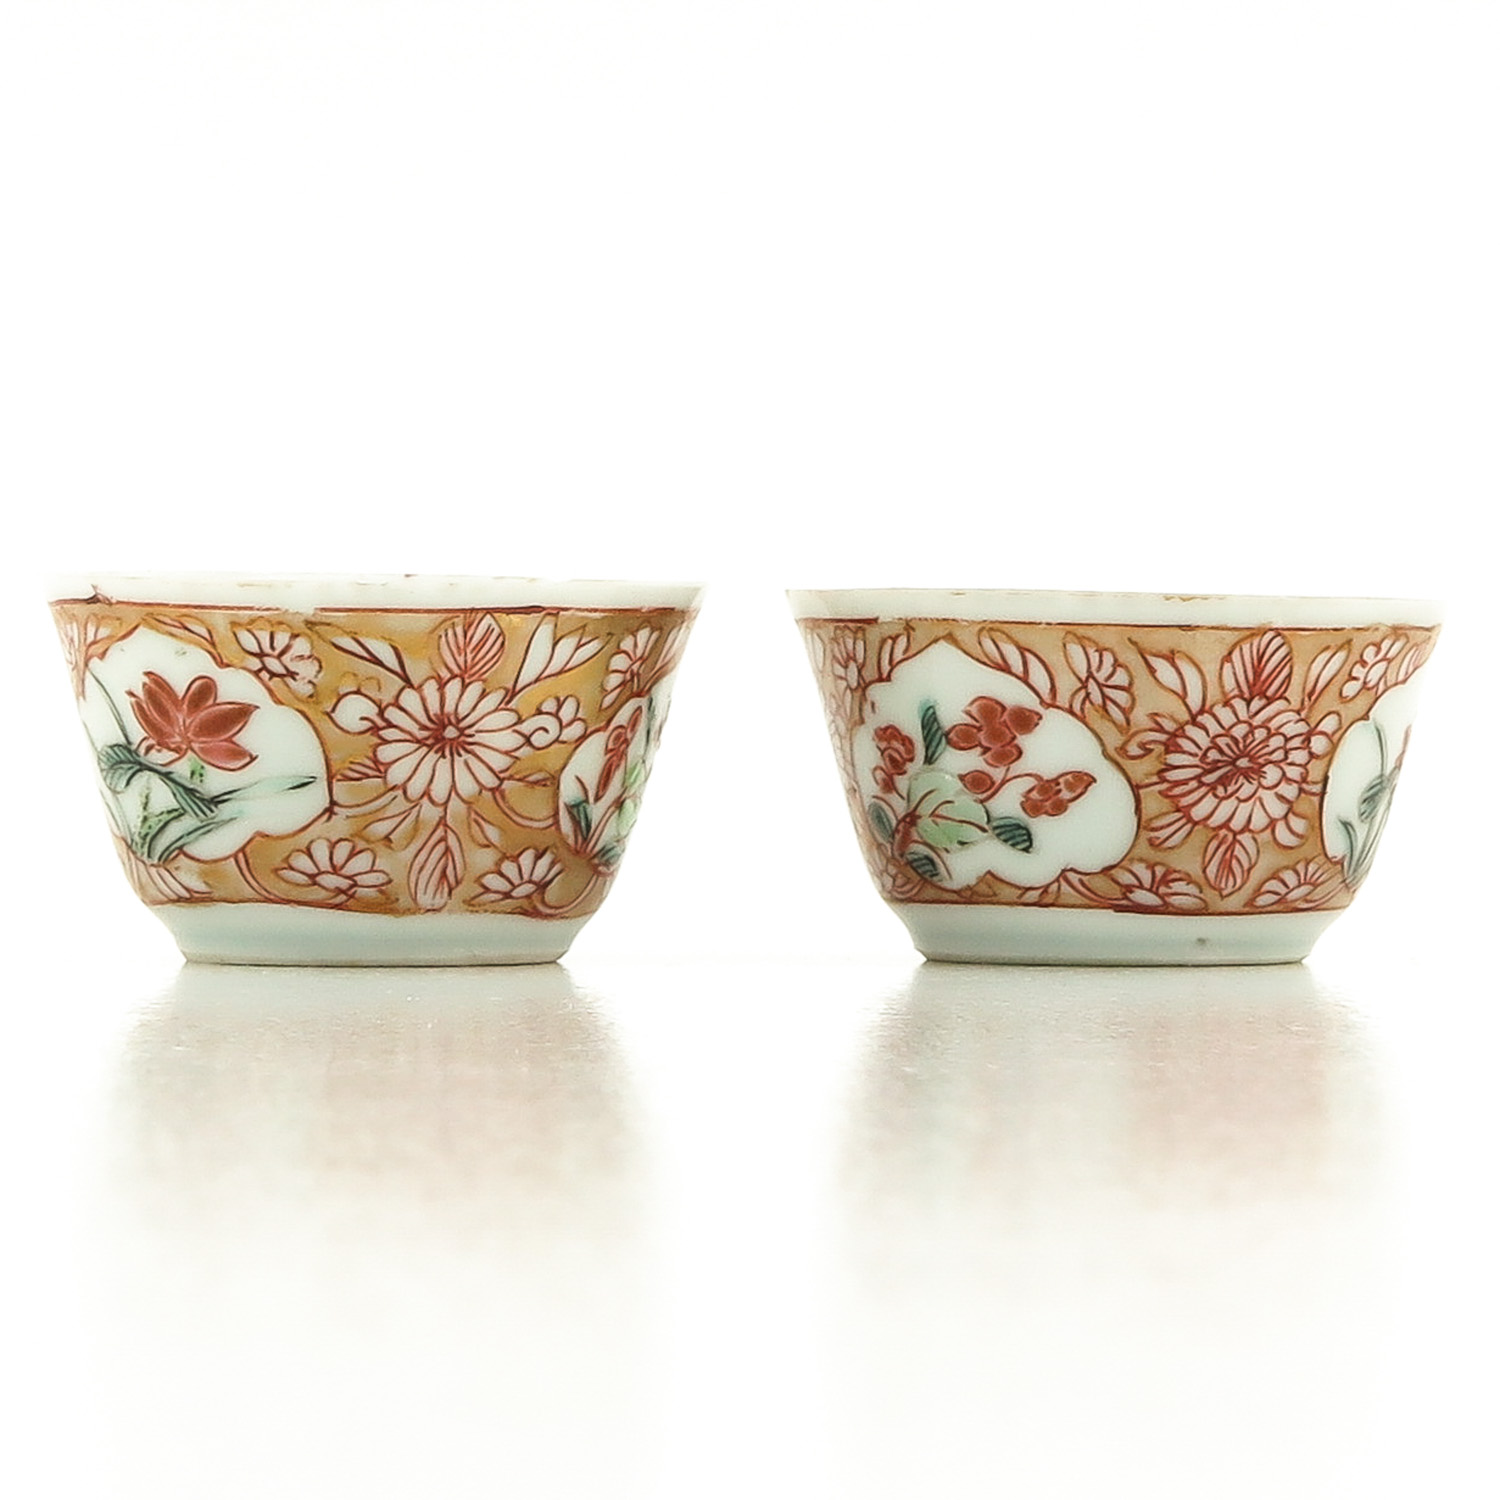 A Set of 2 Cups and Saucers - Image 3 of 10